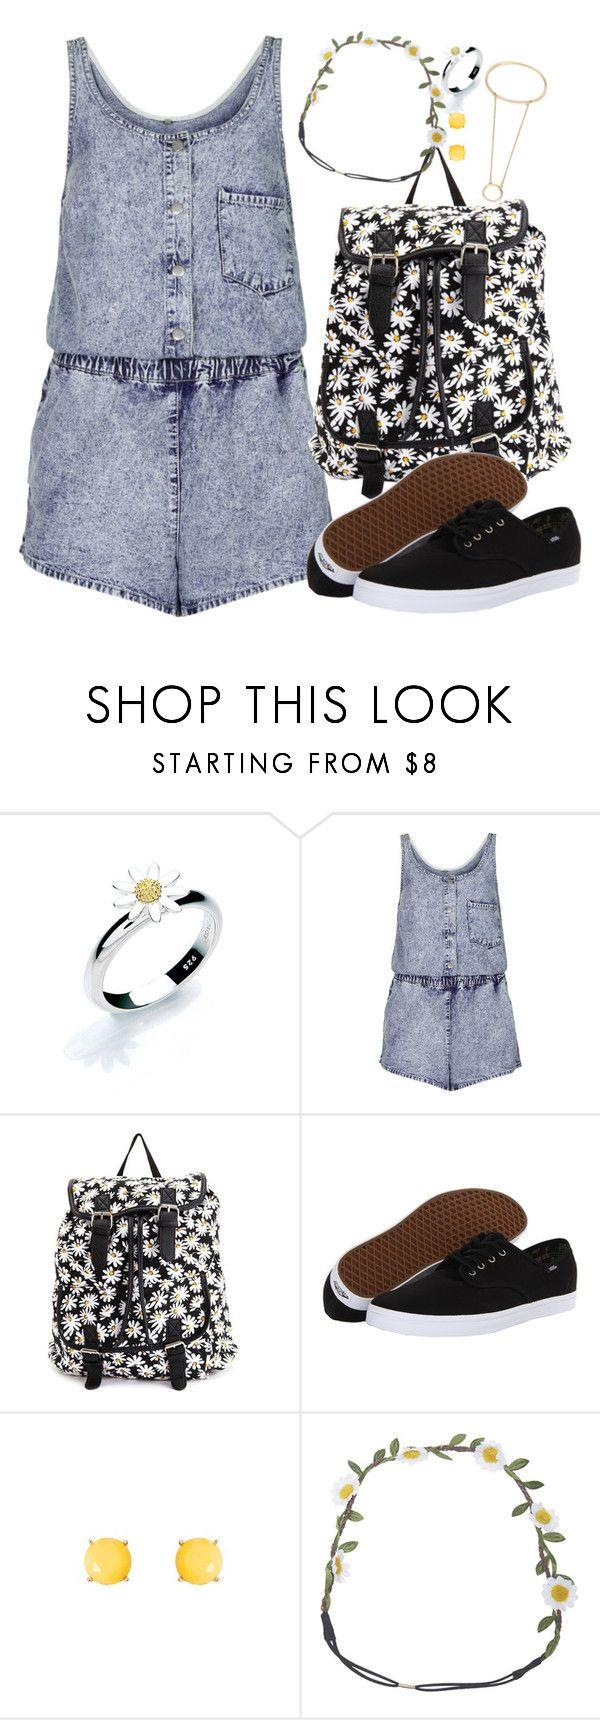 """""""When I wake up I'm afraid, somebody else might take my place"""" by rocketsheep ❤ liked on Polyvore featuring Daisy Jewellery, Topshop, Charlotte Russe, Vans, Humble Chic, Wet Seal, Daisy, vans, lyrics and TheNeighbourhood"""